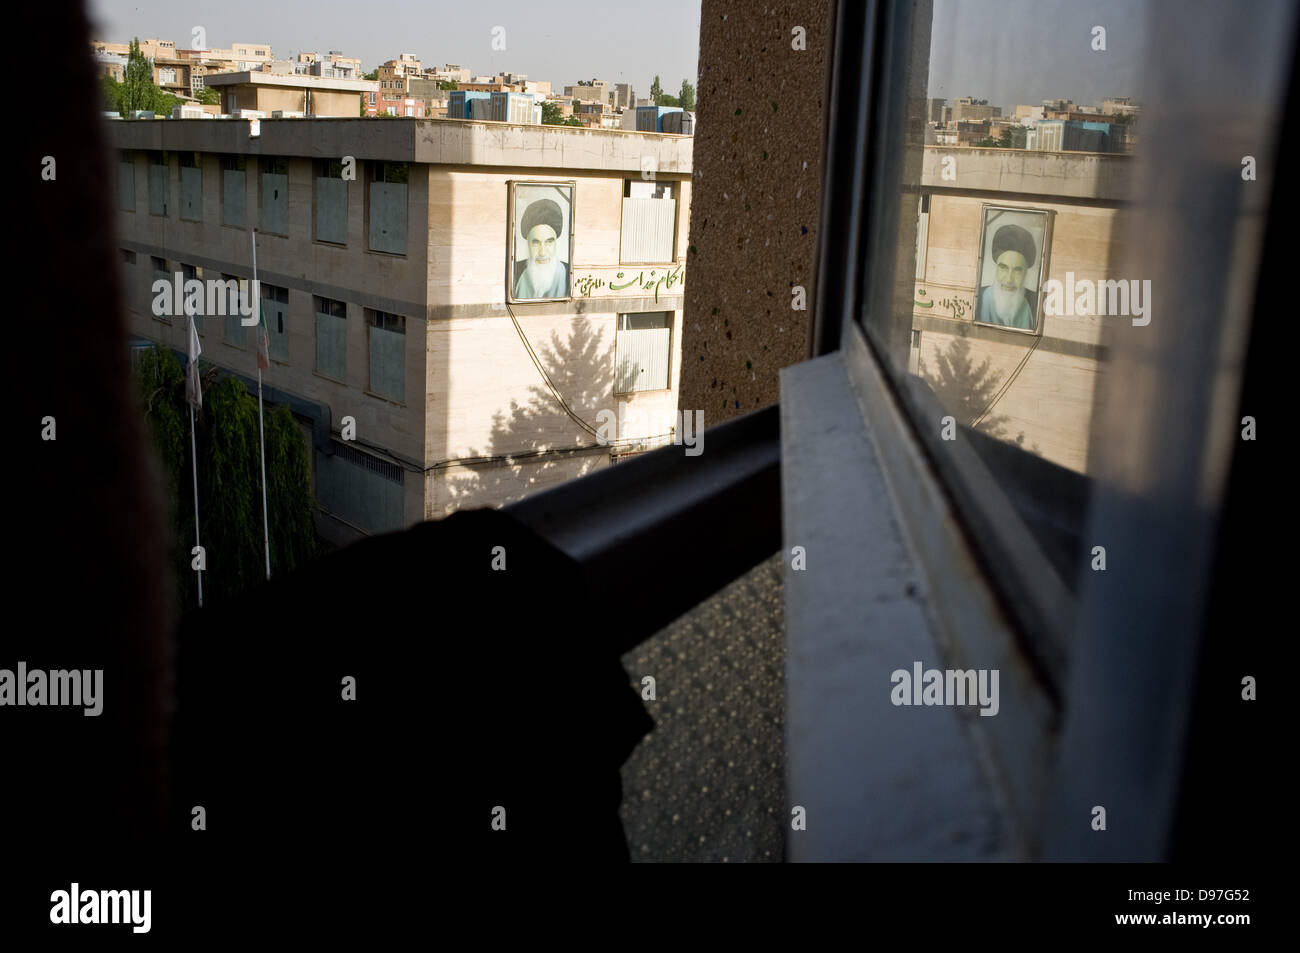 29/05/2013 - Sanandaj. The image of the leader of the Iranian Revolution Imam Khomeini on the wall of a building - Stock Image